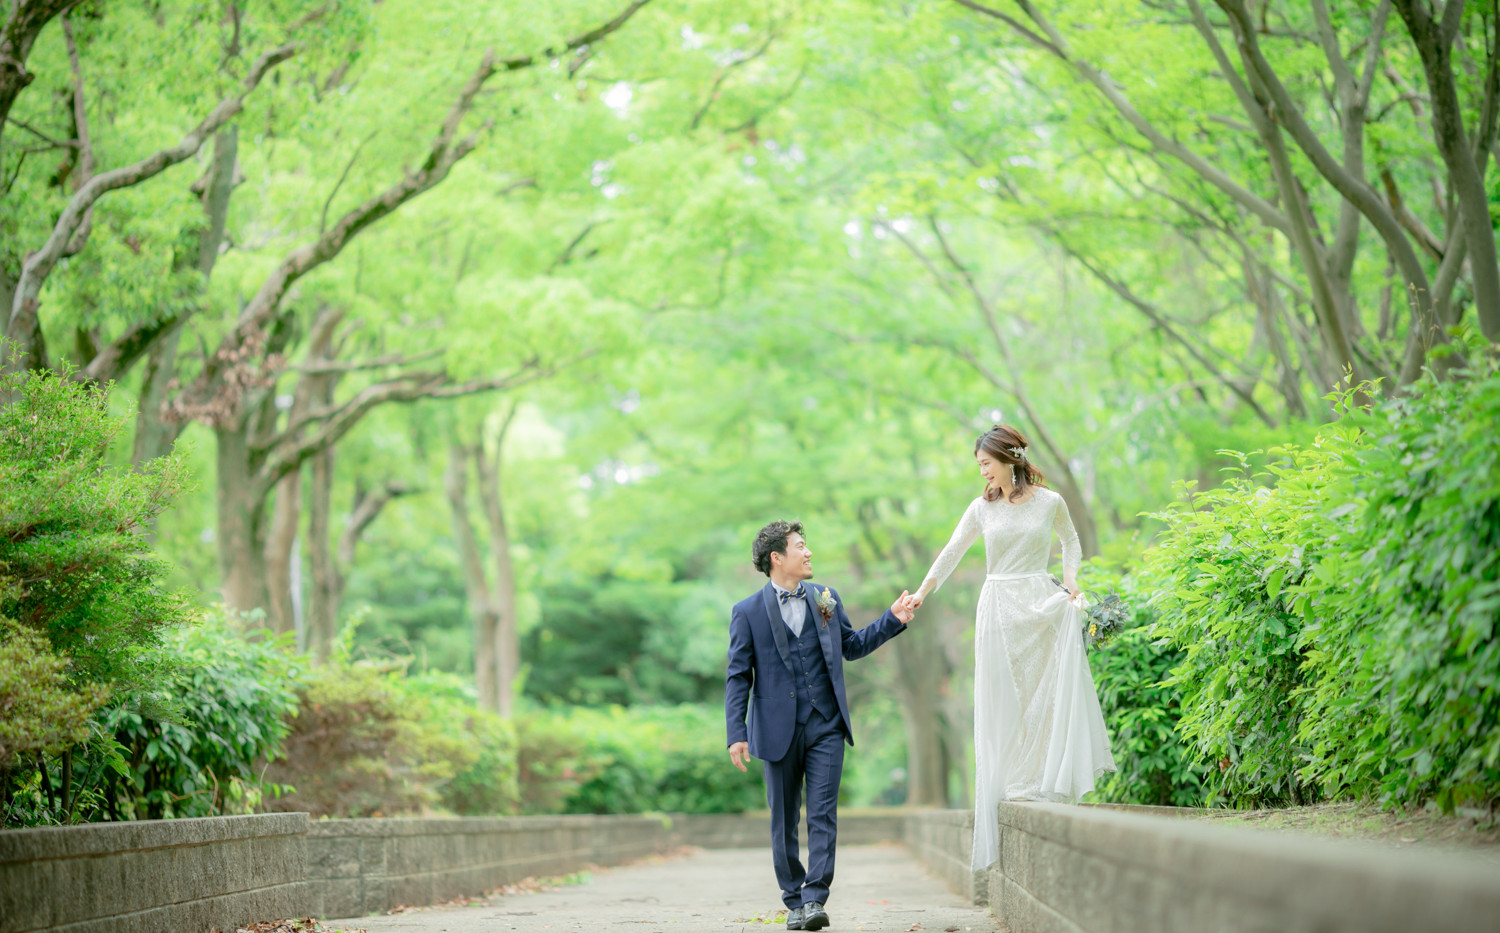 takane_wedding_photography